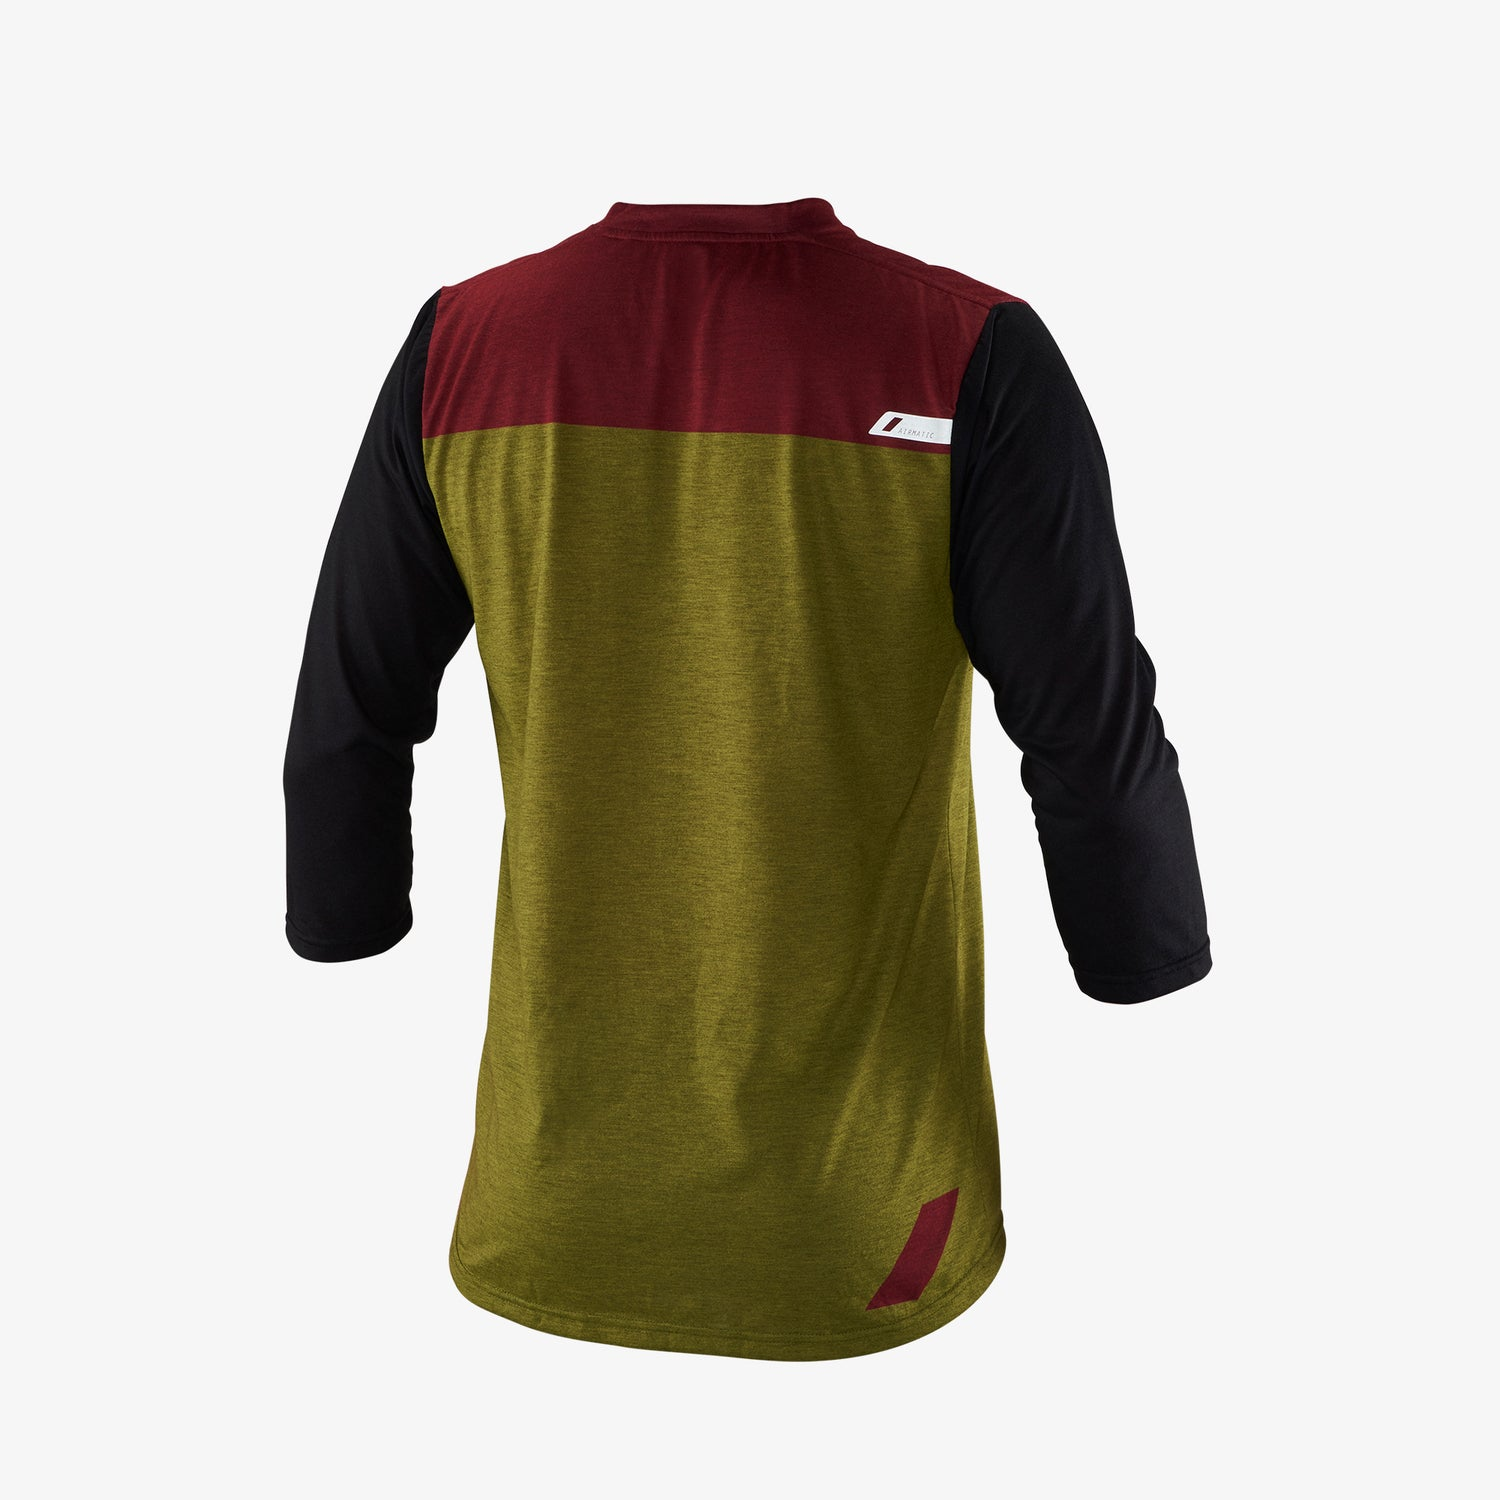 AIRMATIC Jersey 3/4 - Olive